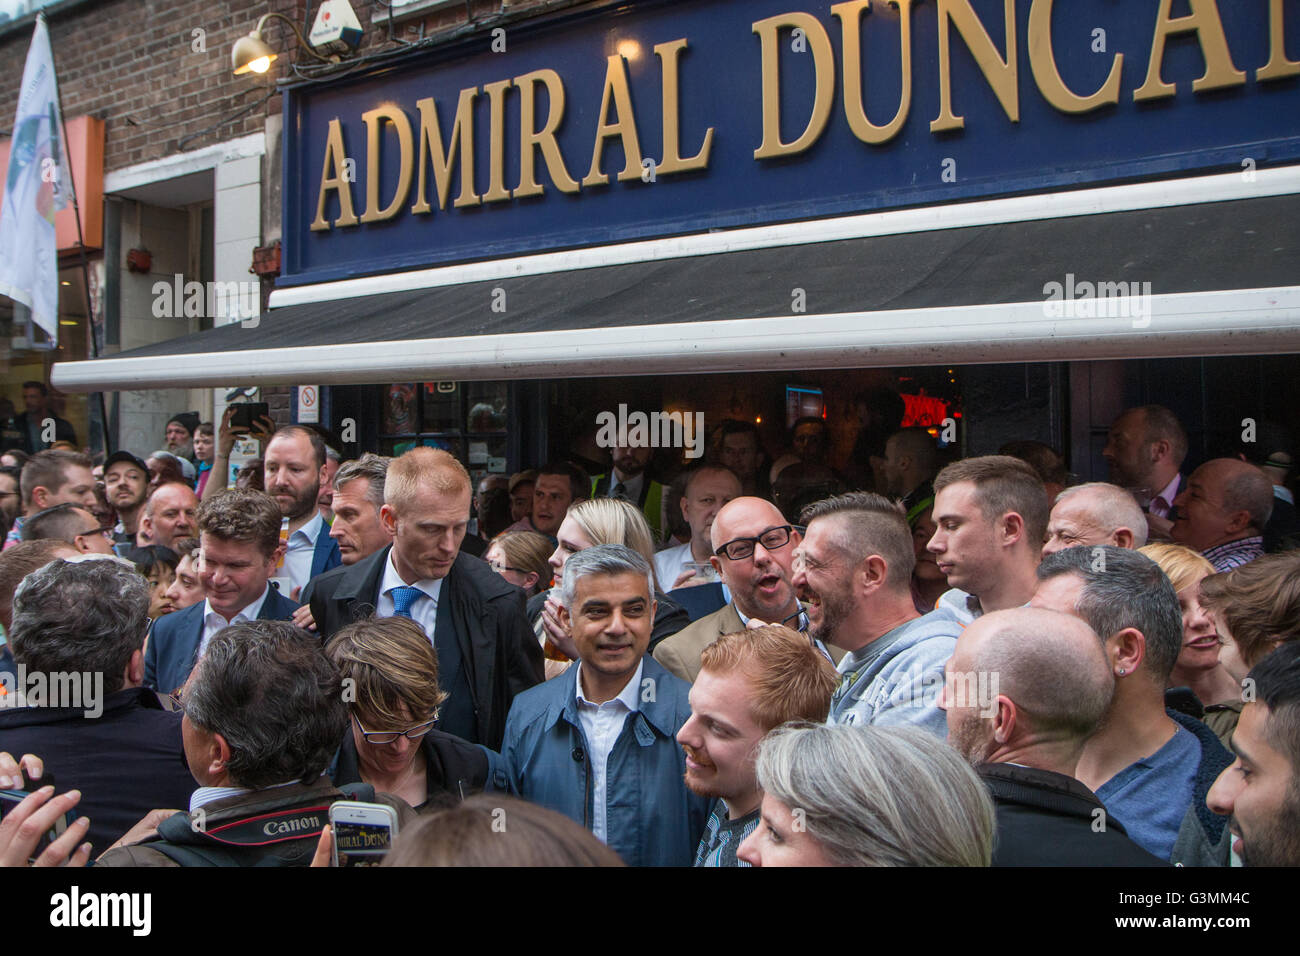 Mayor of London outside the Admiral Duncan pub ()bombed in 1999) - Stock Image